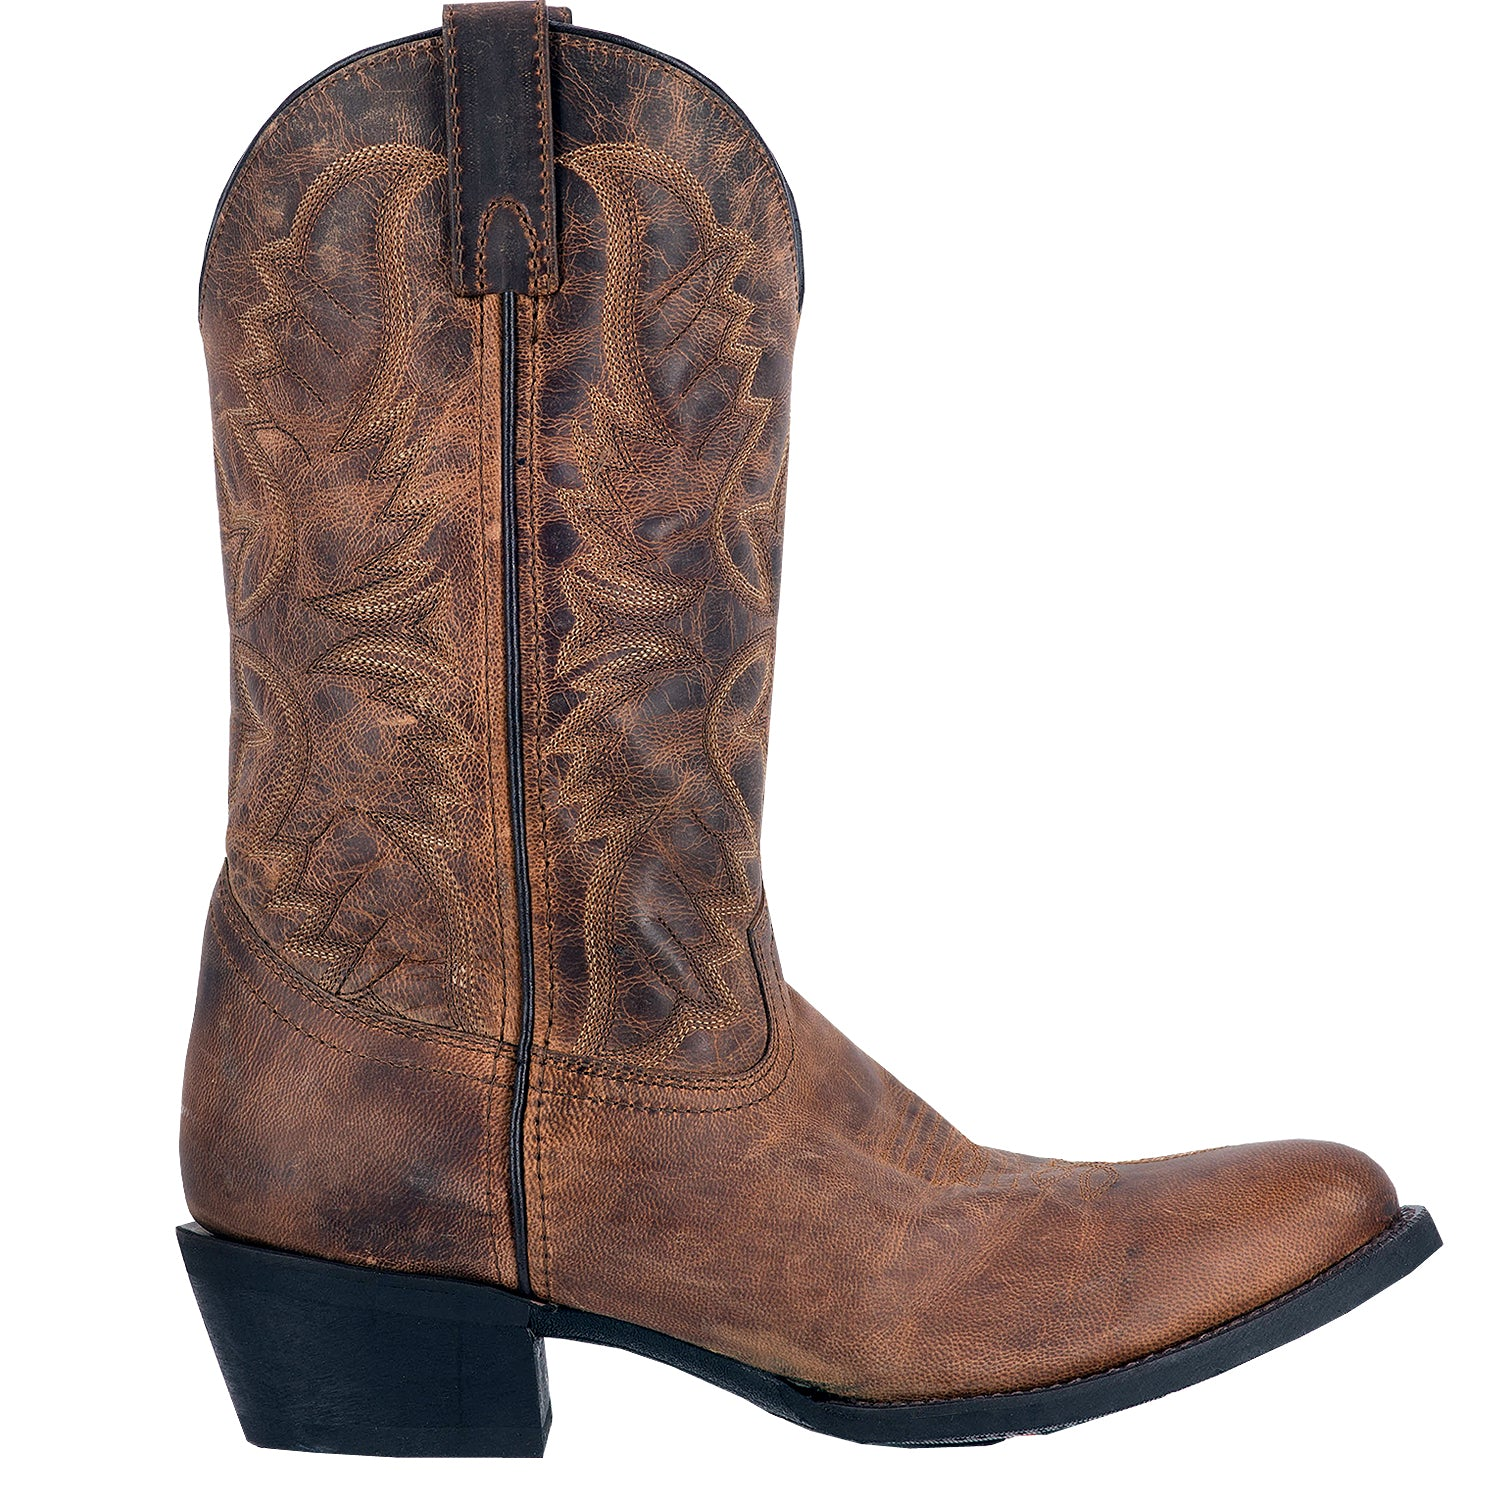 BIRCHWOOD LEATHER BOOT